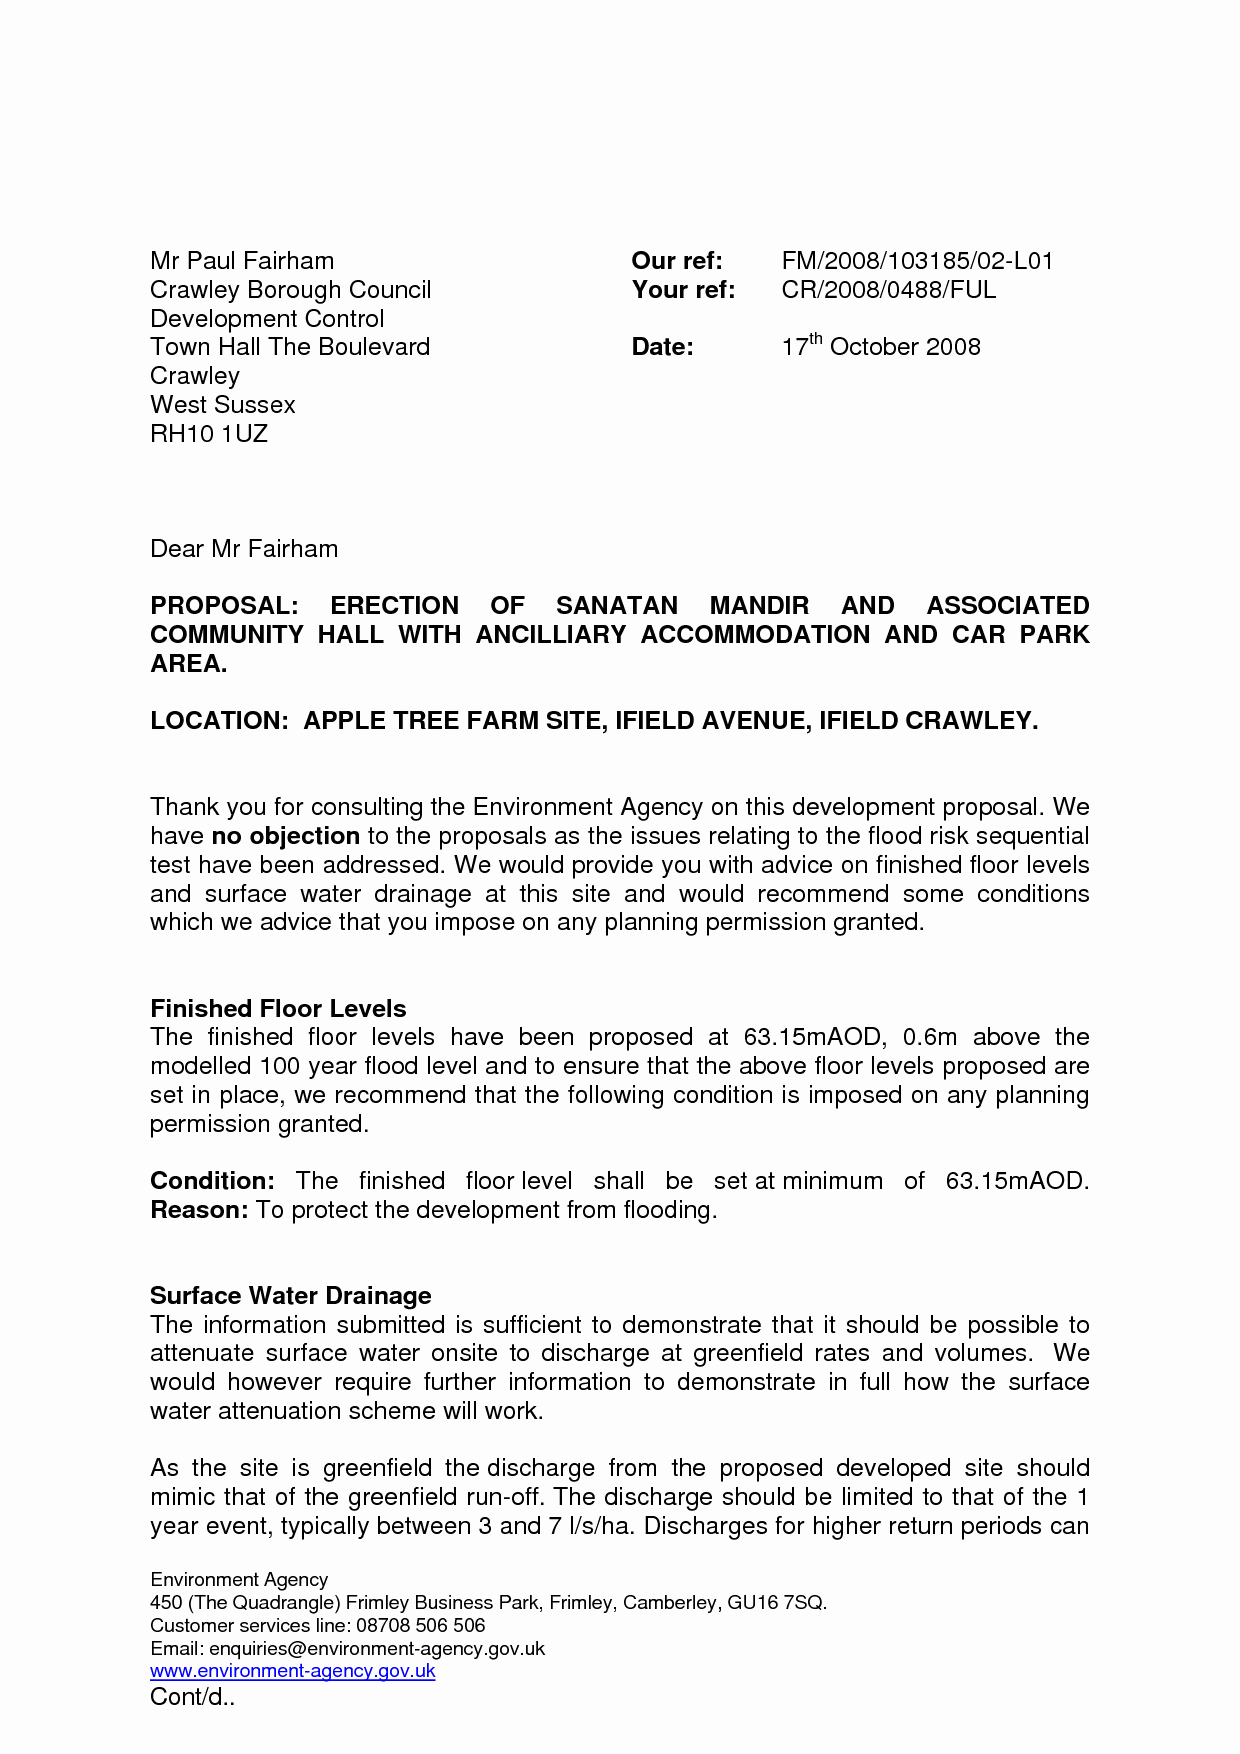 Business Cover Letter Template Elegant Fax Letter A Big Collection Of Free Fax Letter Templates